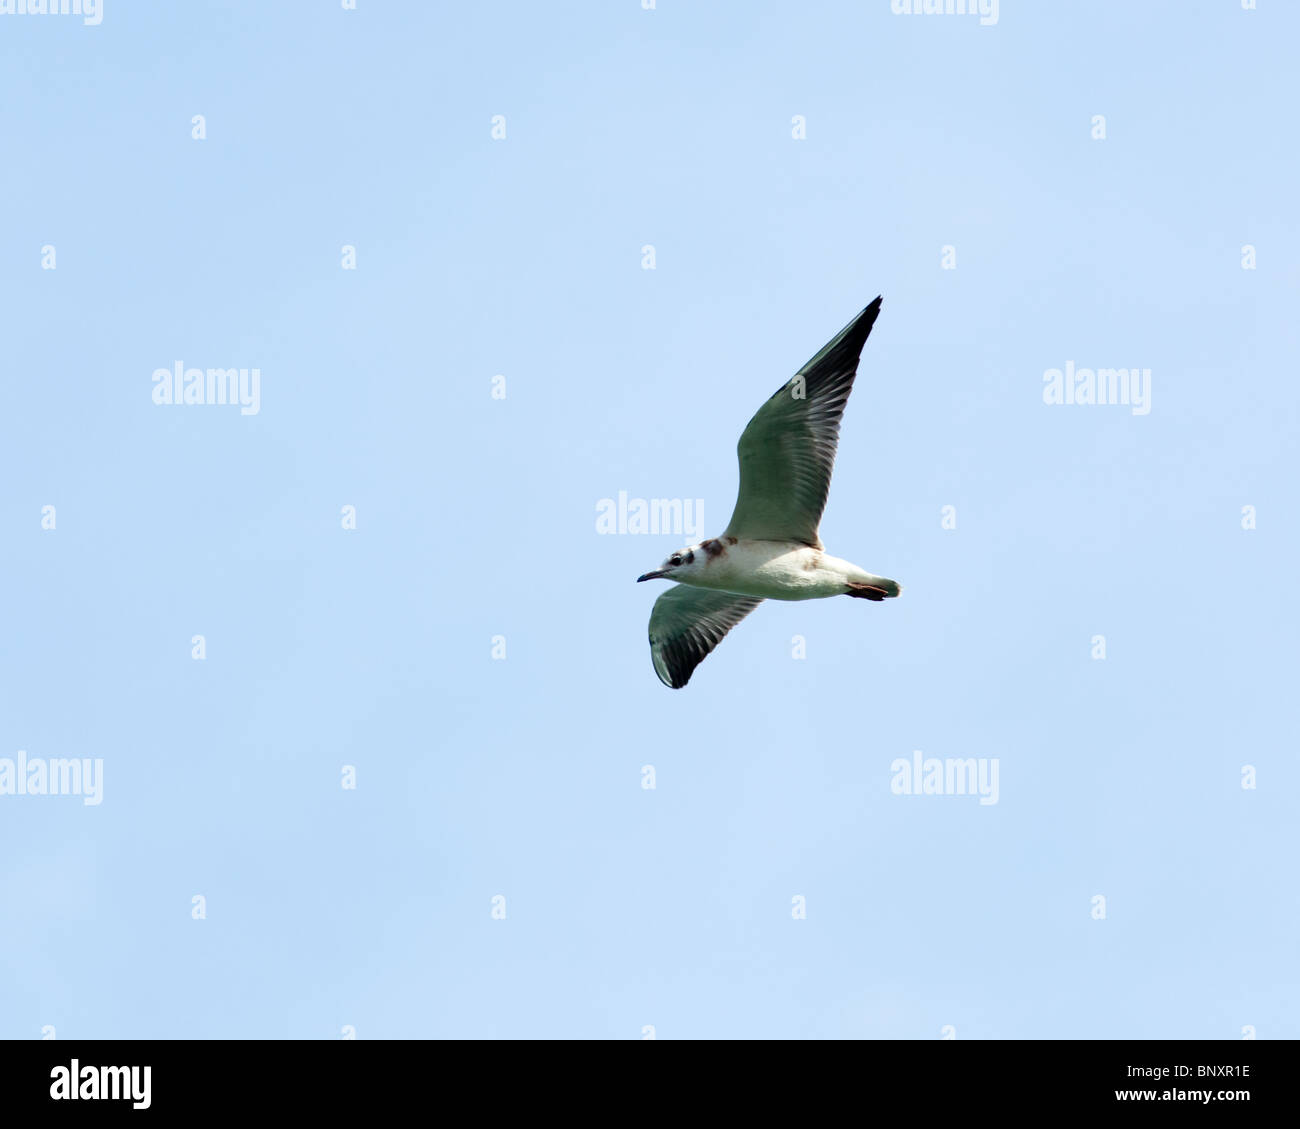 Black-headed, Larus ridibundus in the flying. - Stock Image